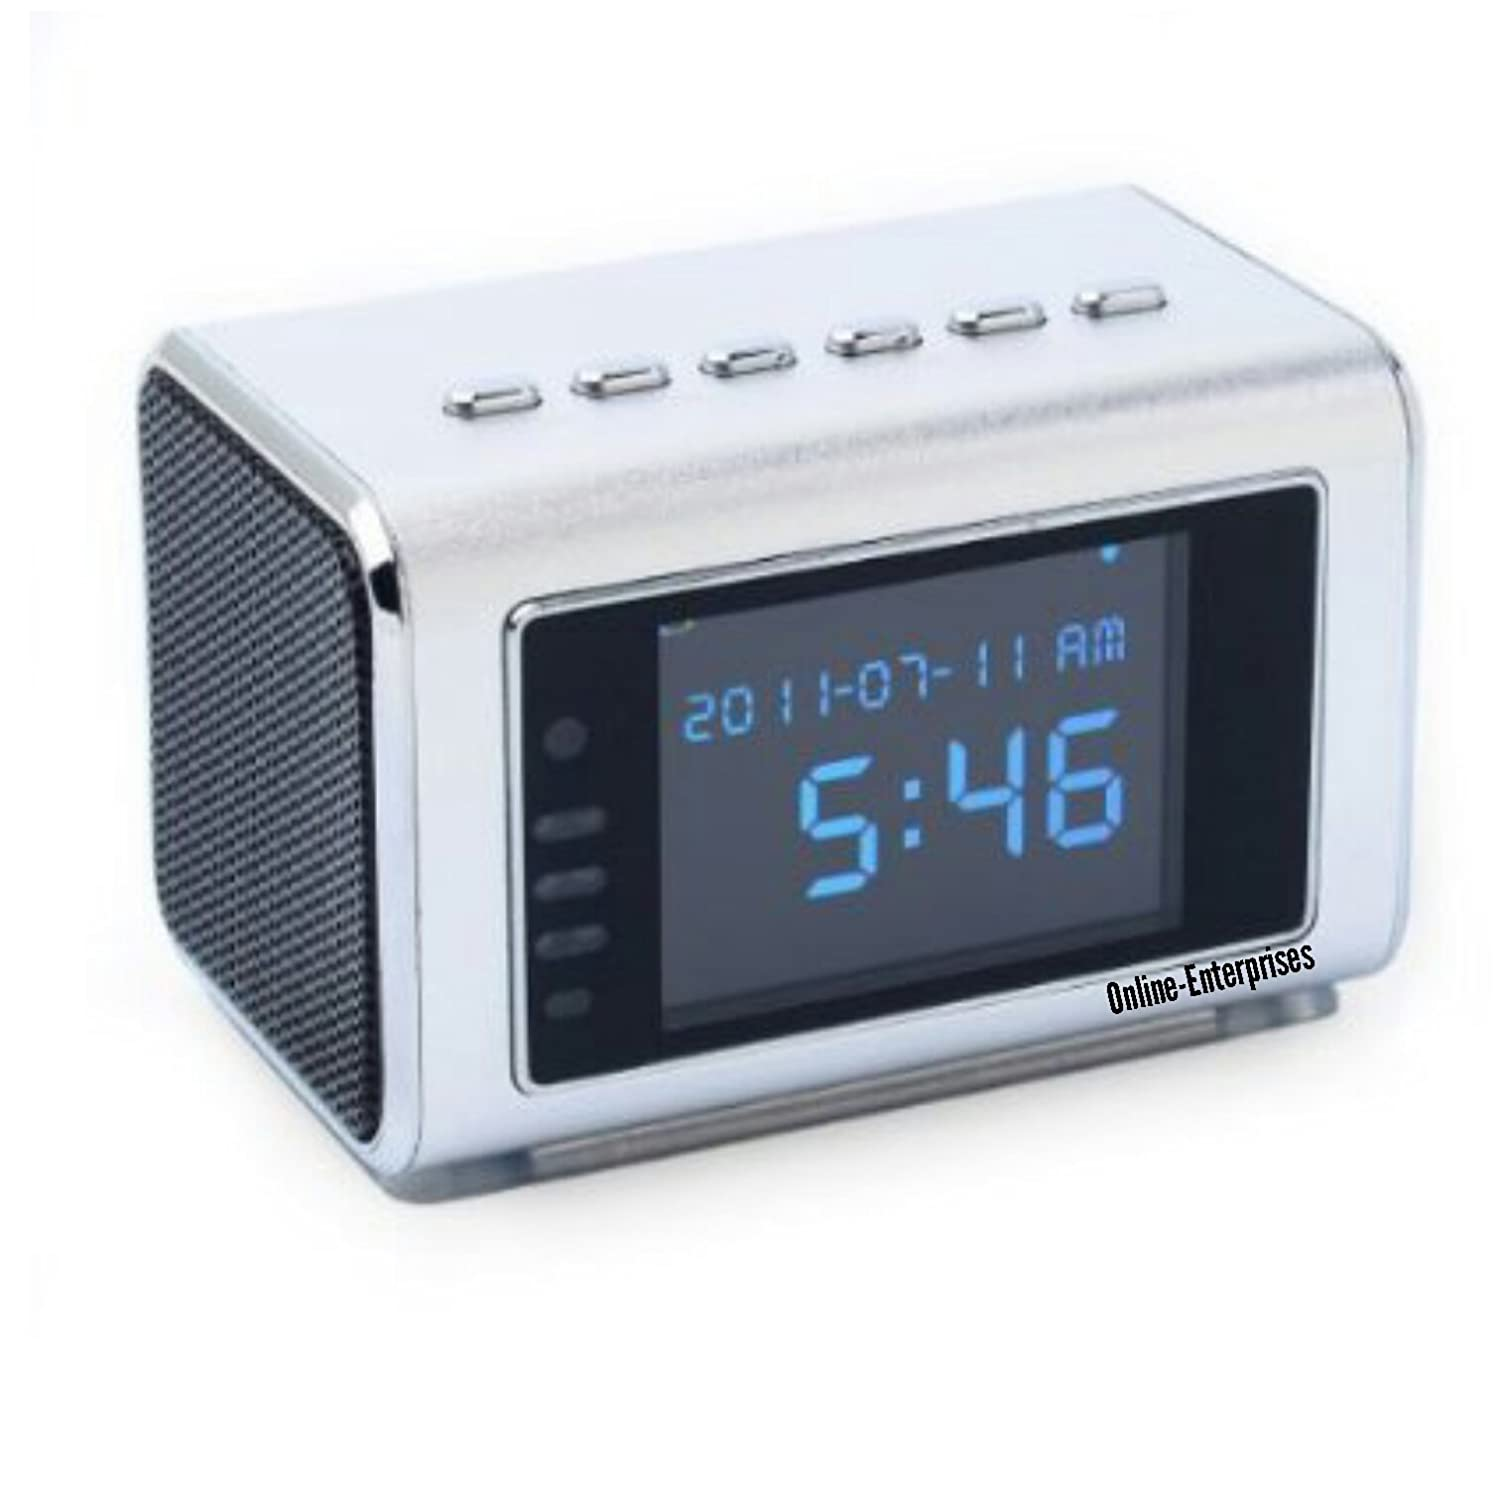 Top Secret Spy Camera Mini Clock Radio Hidden Dvr Http Wwwschematicdiagramcom Electronicdigitalclockhtml Continuous Power Or Battery Nanny Cam Photo